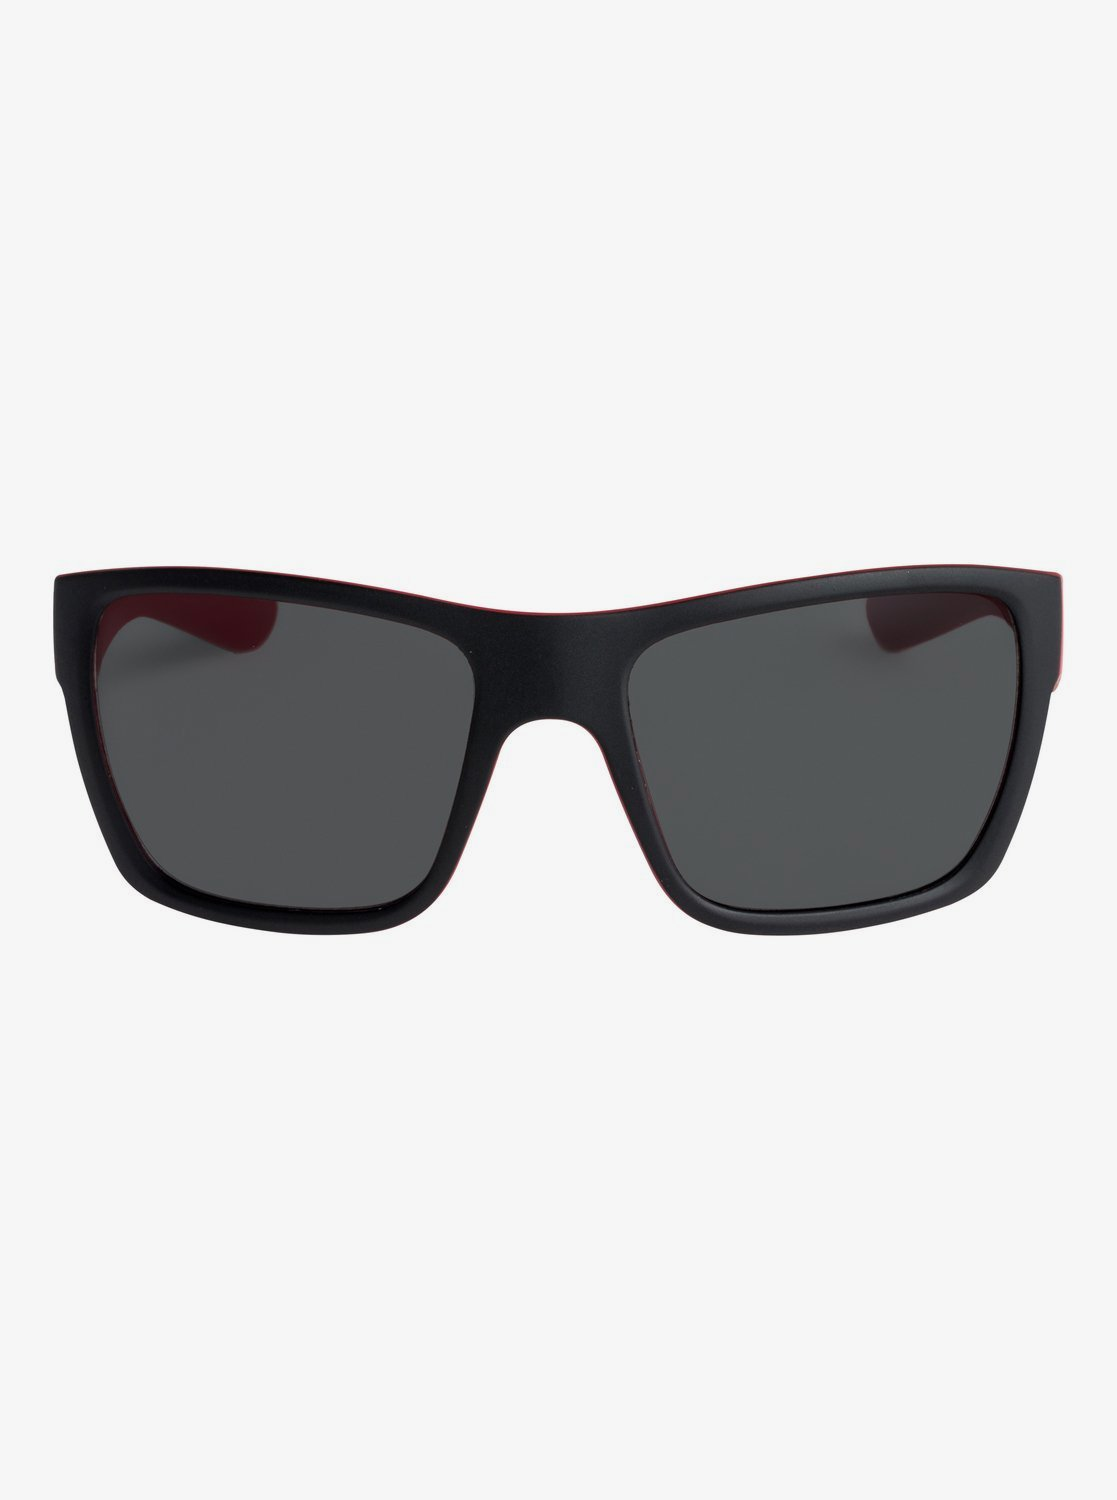 Captain quiksilve sunglasses EQBEY03003 xkrs